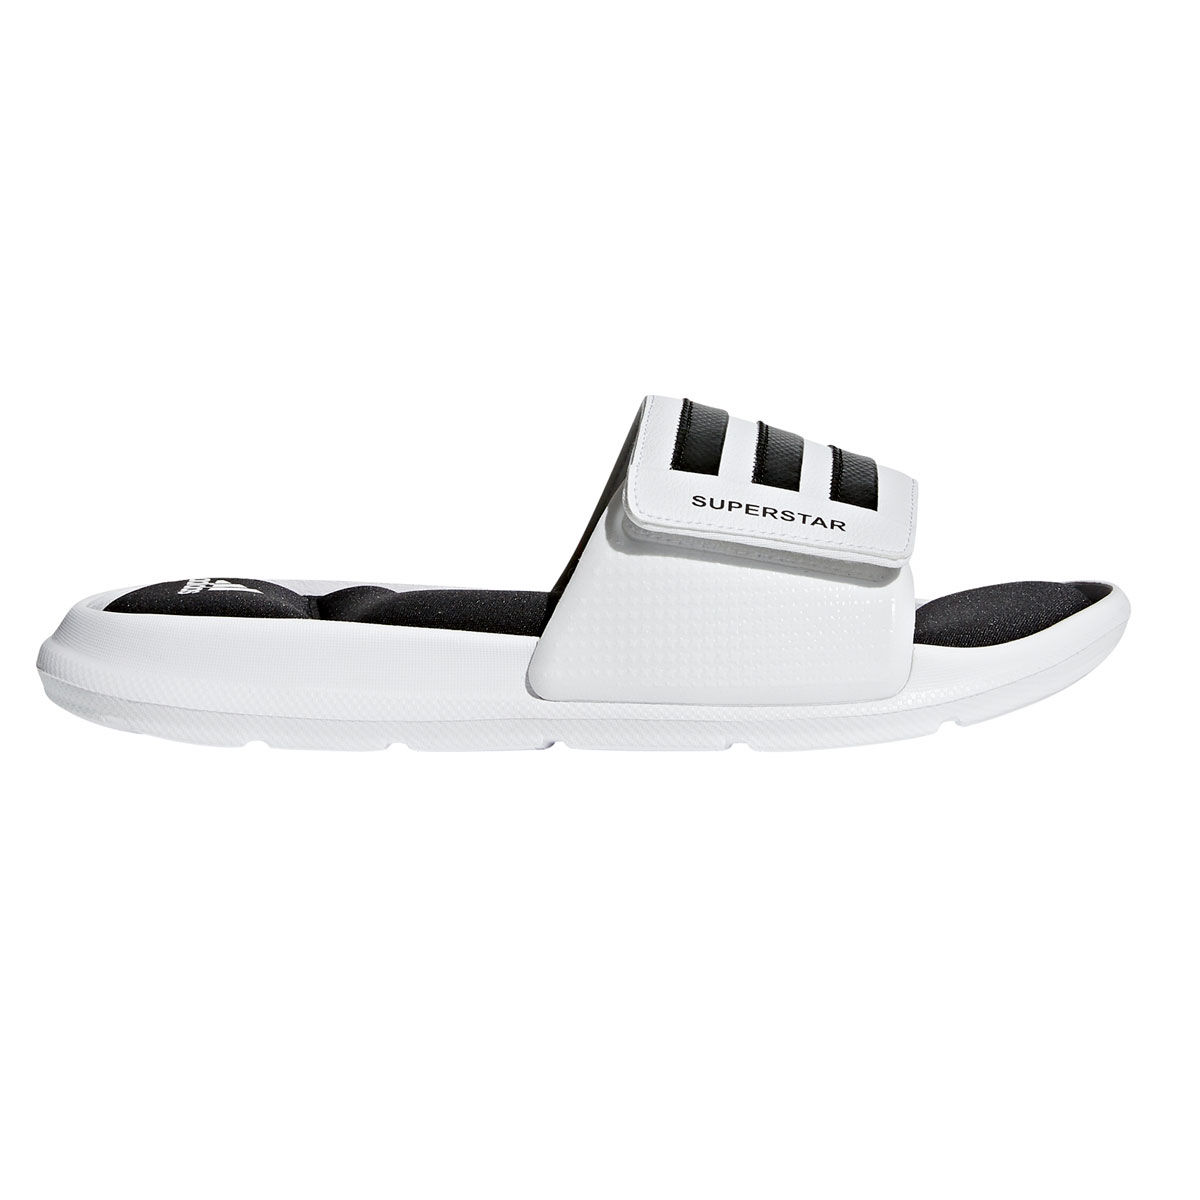 adidas Superstar 5G Mens Slide